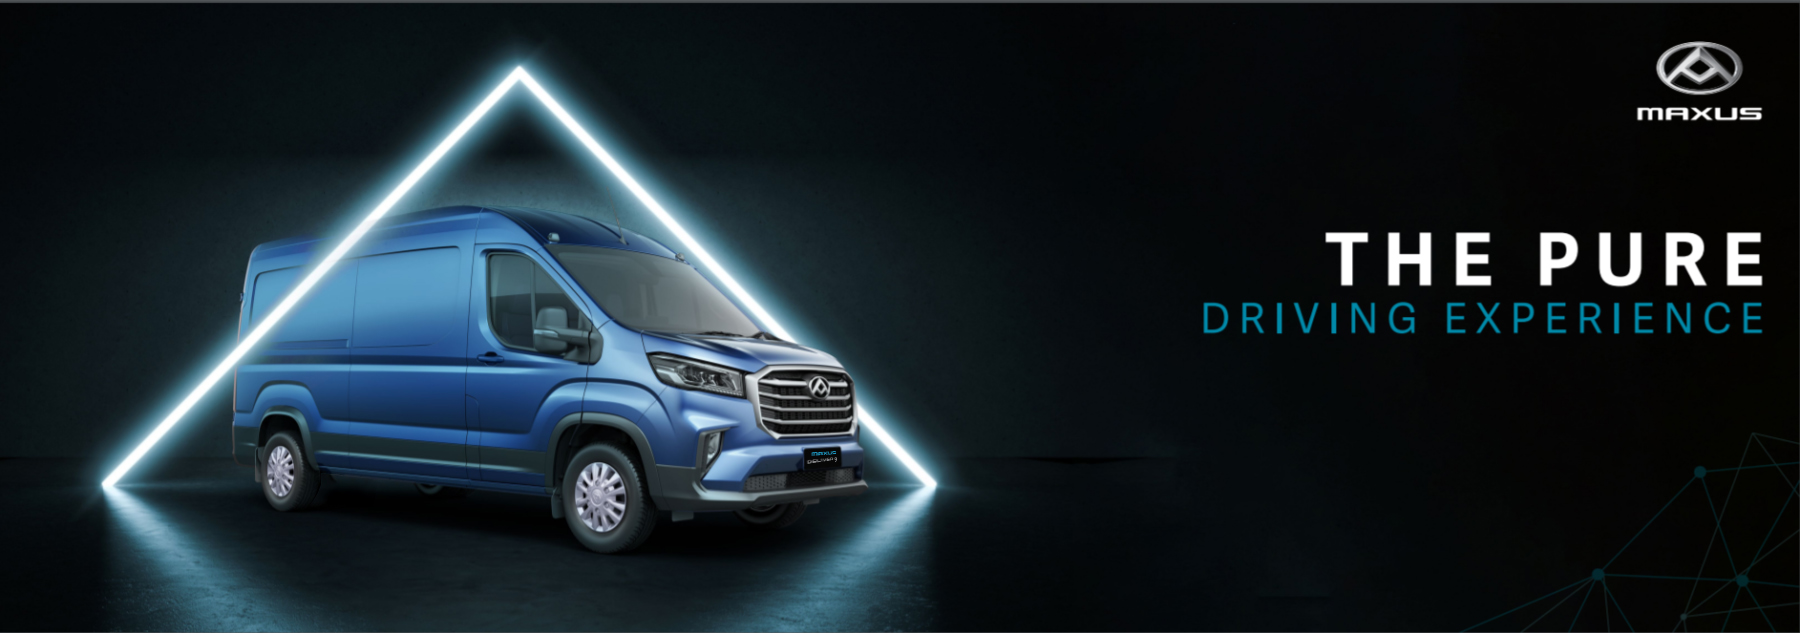 Maxus Deliver 9 - The pure driving experience